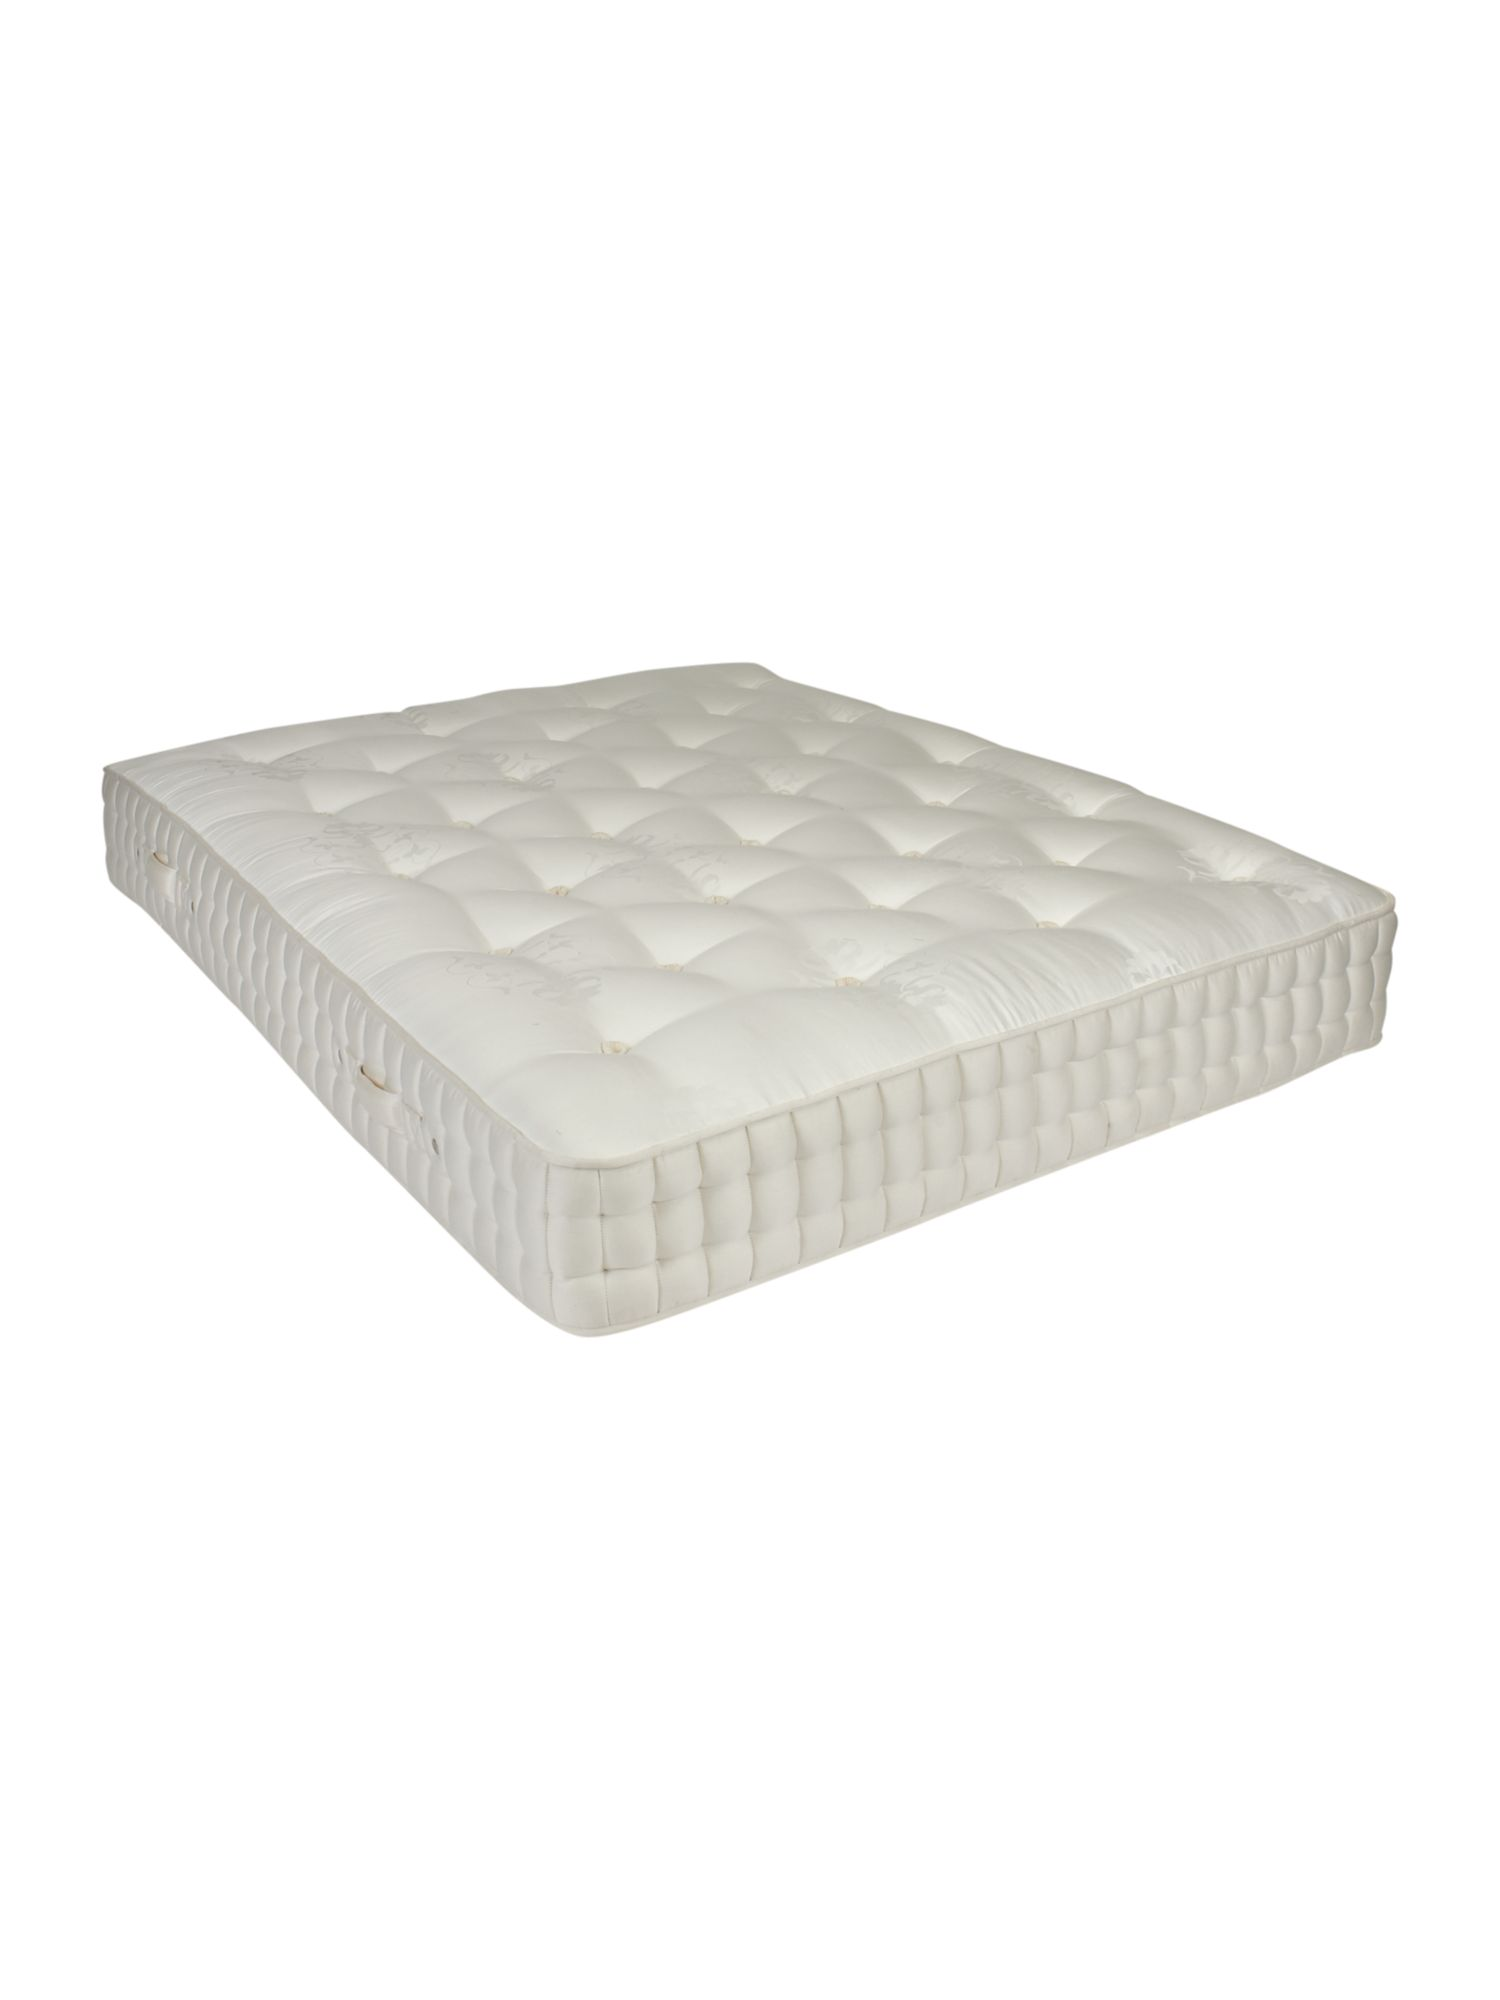 Pateley mattress range